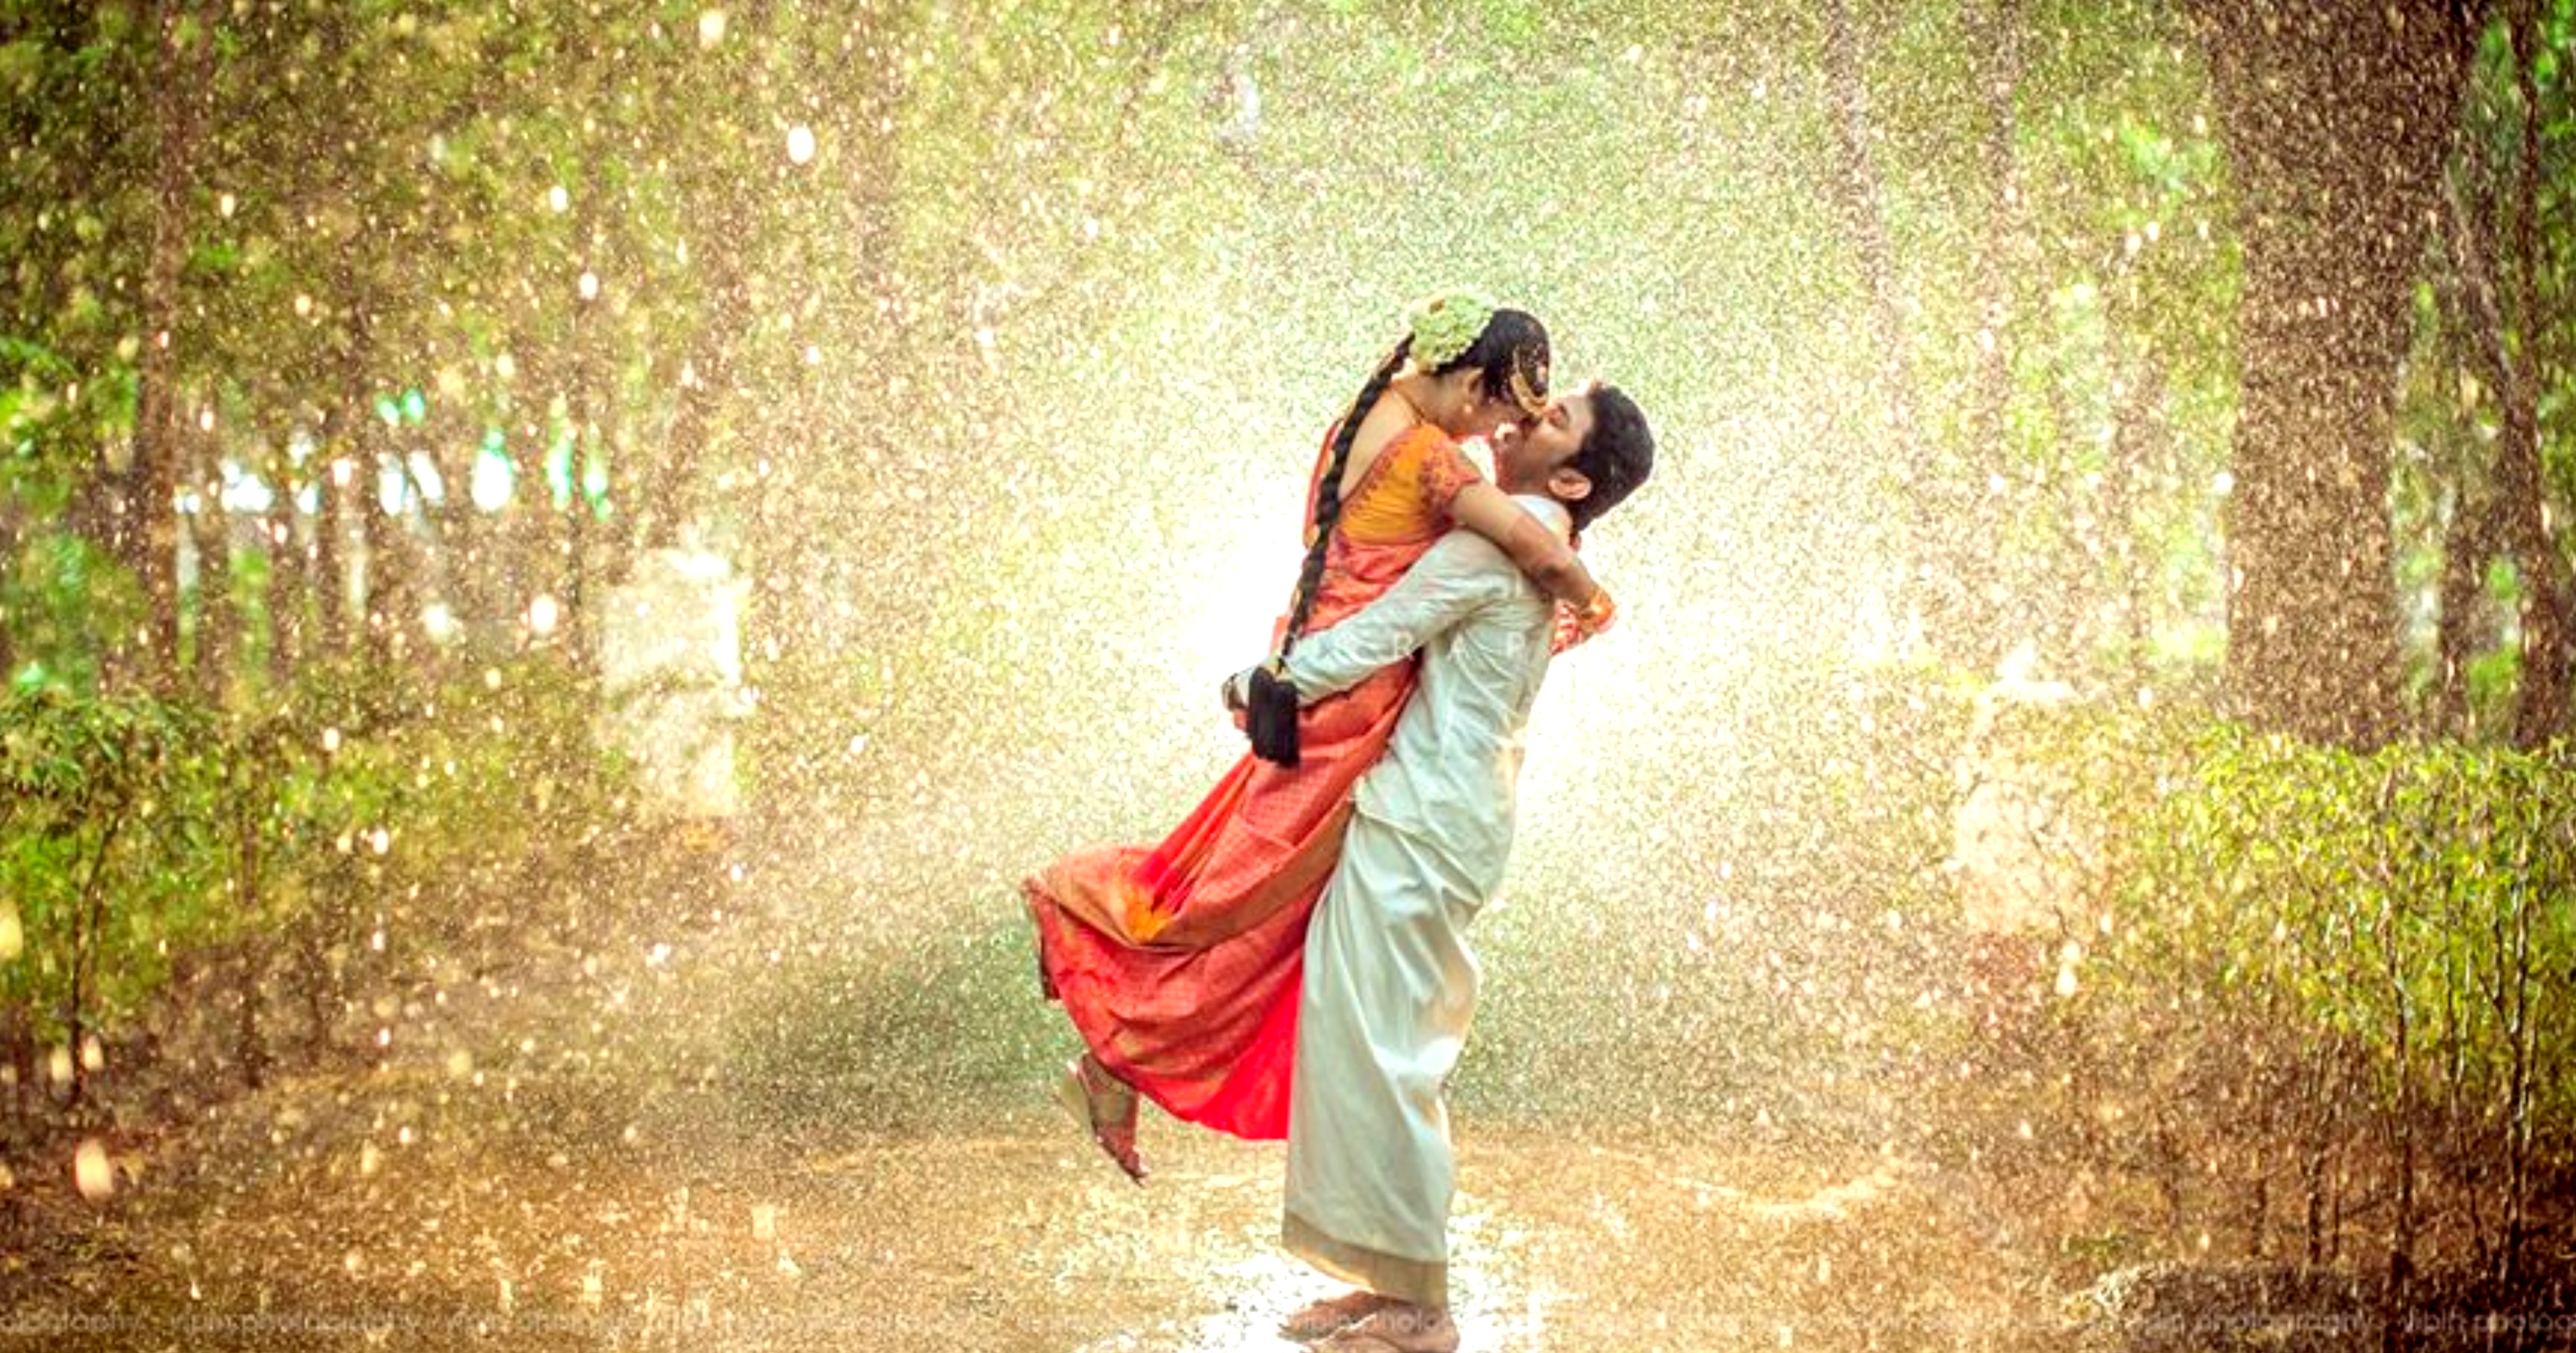 Indian Wedding Photography.10 Best Wedding Photographers For Your South Indian Wedding Blog